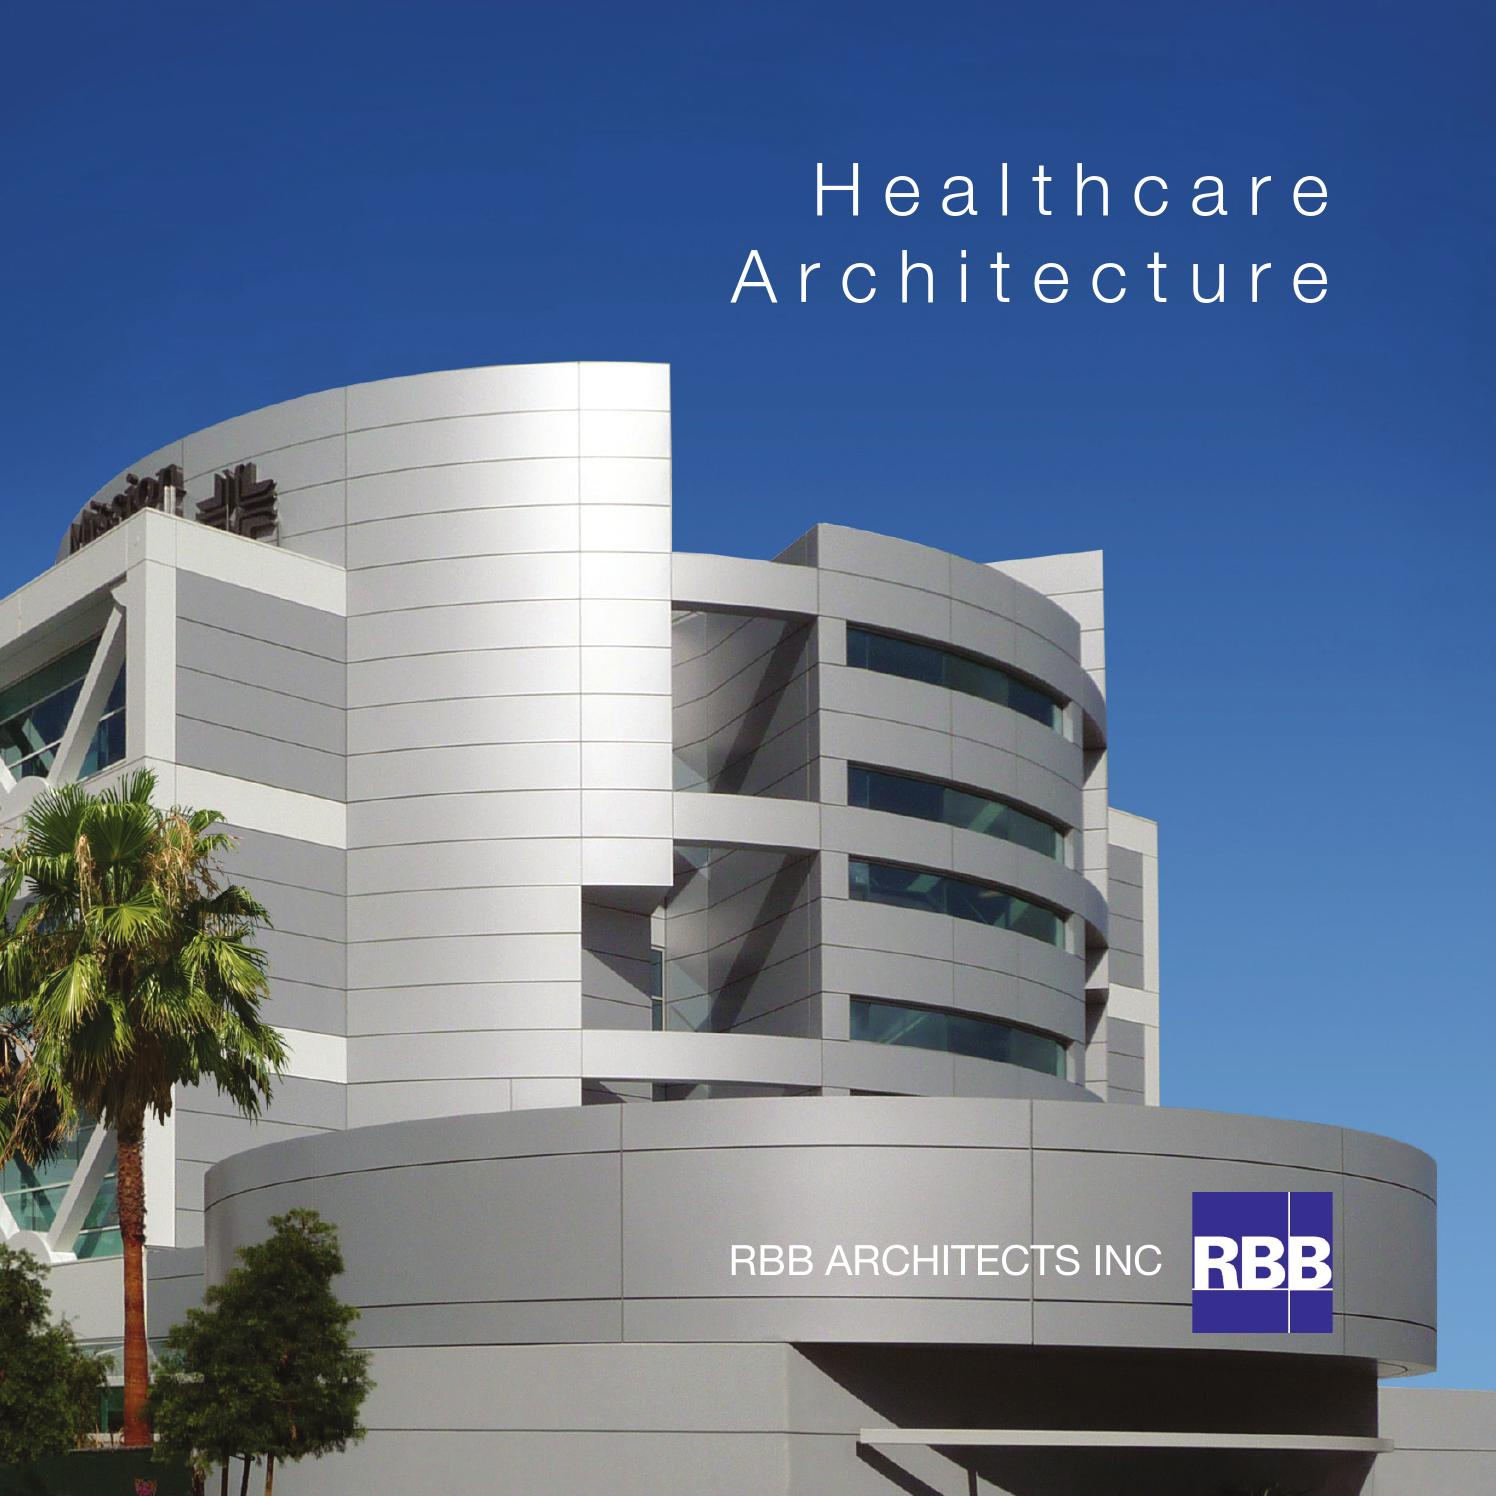 Rbb architects inc healthcare architecture by rbb for Most successful architectural firms